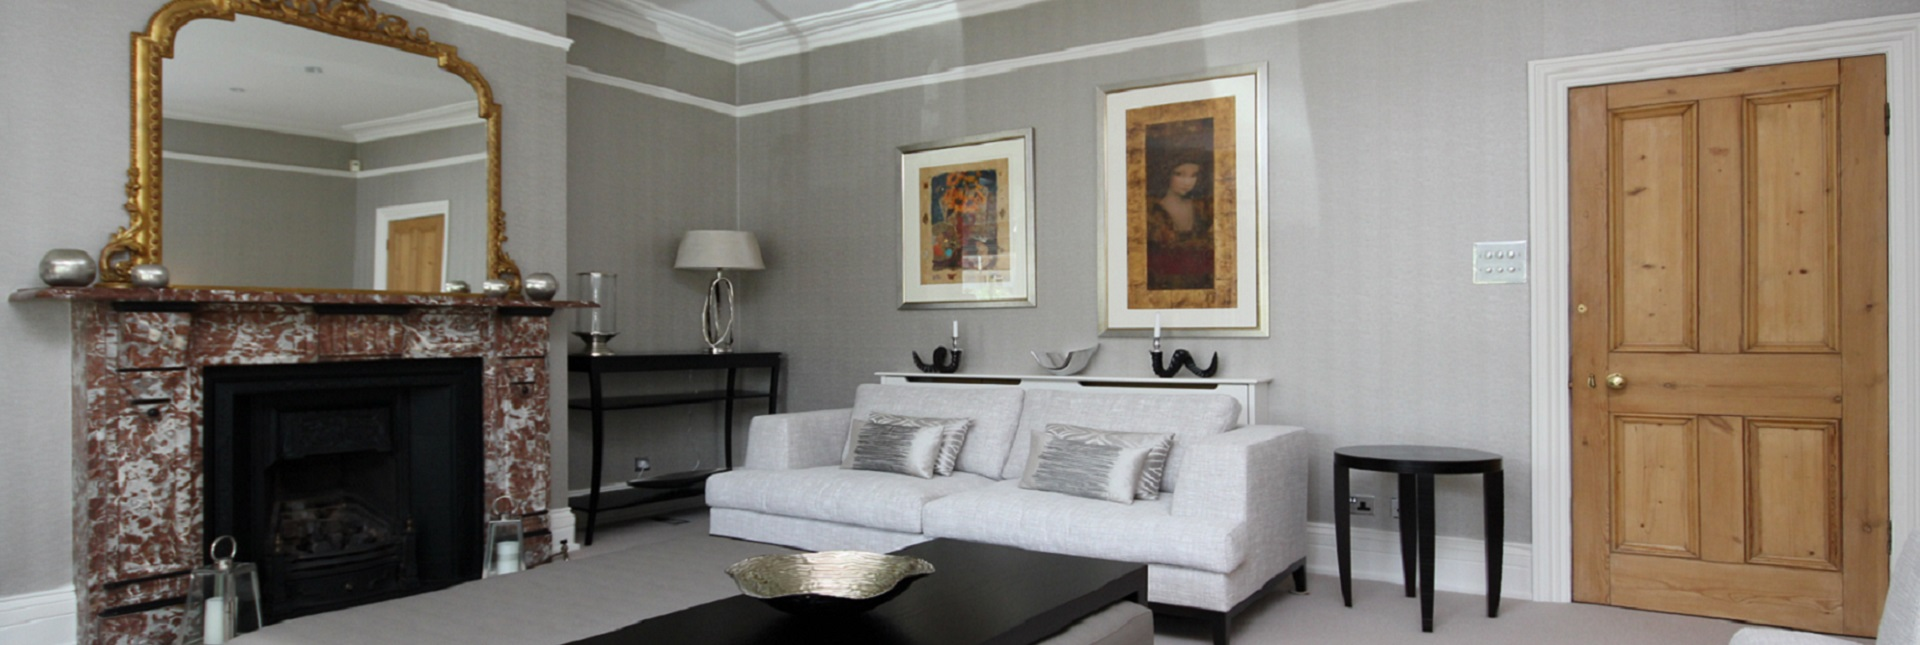 Lorraine Gregory Interior Design